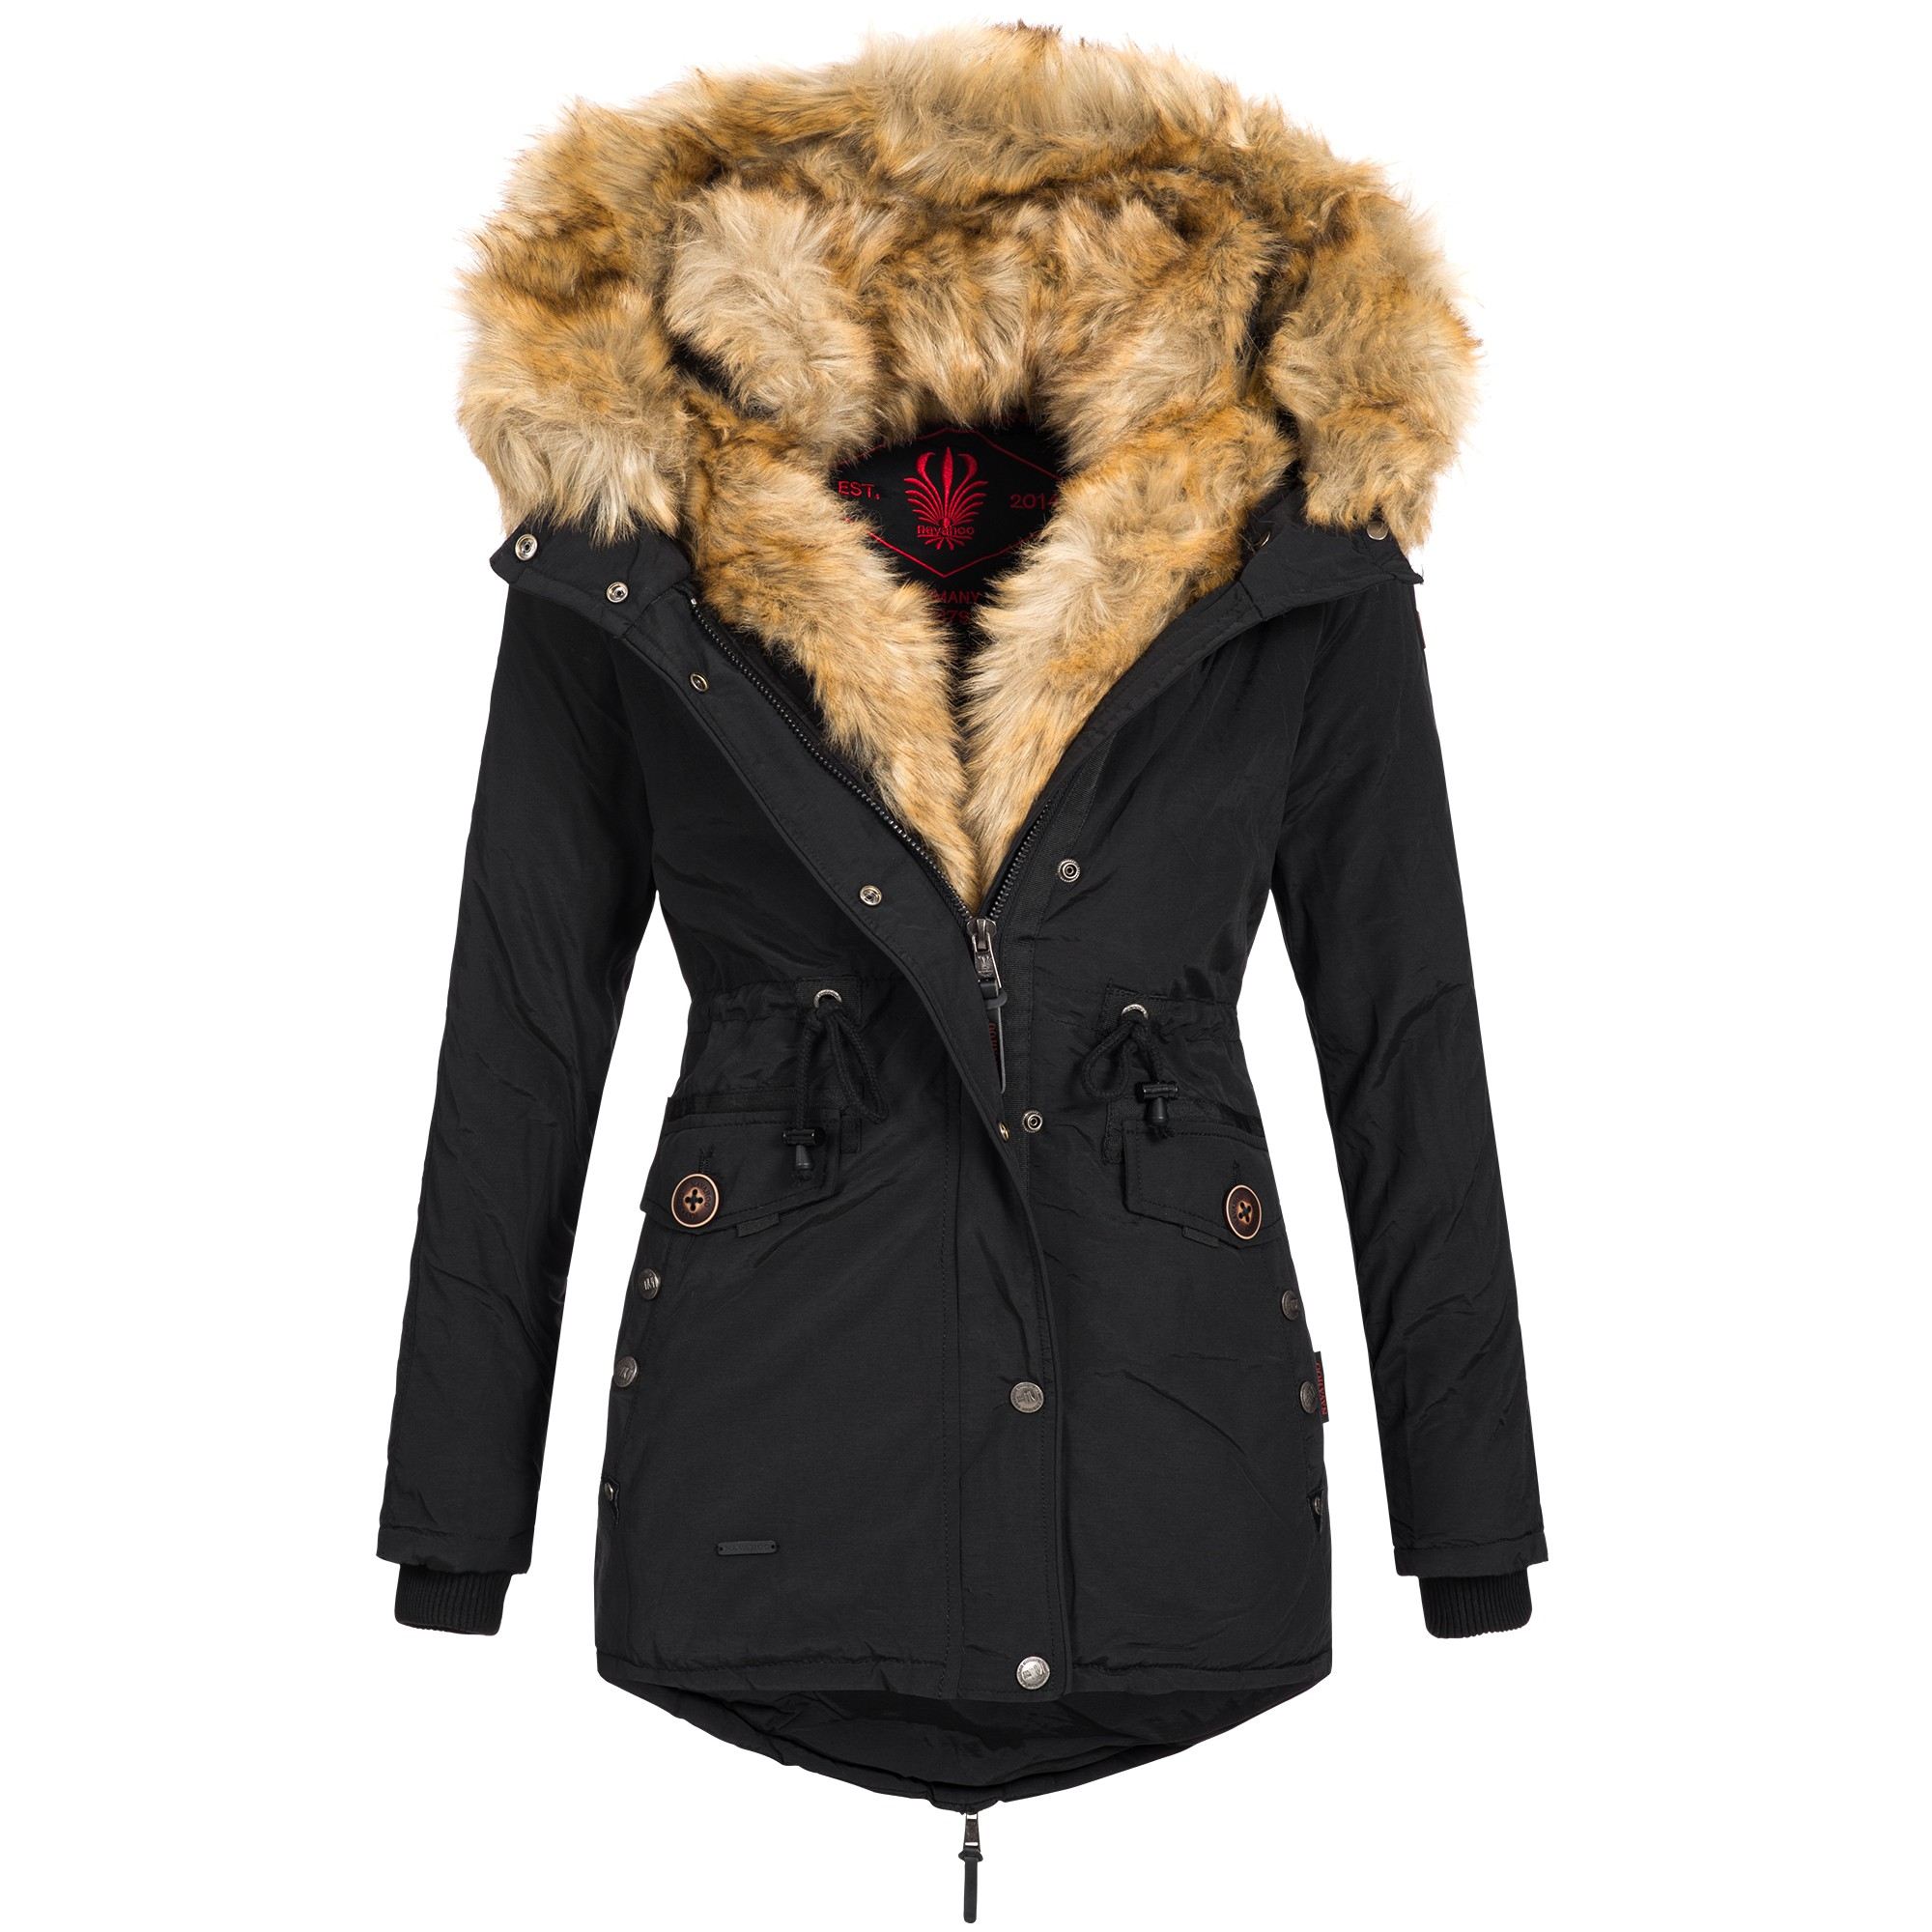 navahoo sweety damen jacke mantel winterjacke warm fell doppelkapuze xs xxl ebay. Black Bedroom Furniture Sets. Home Design Ideas